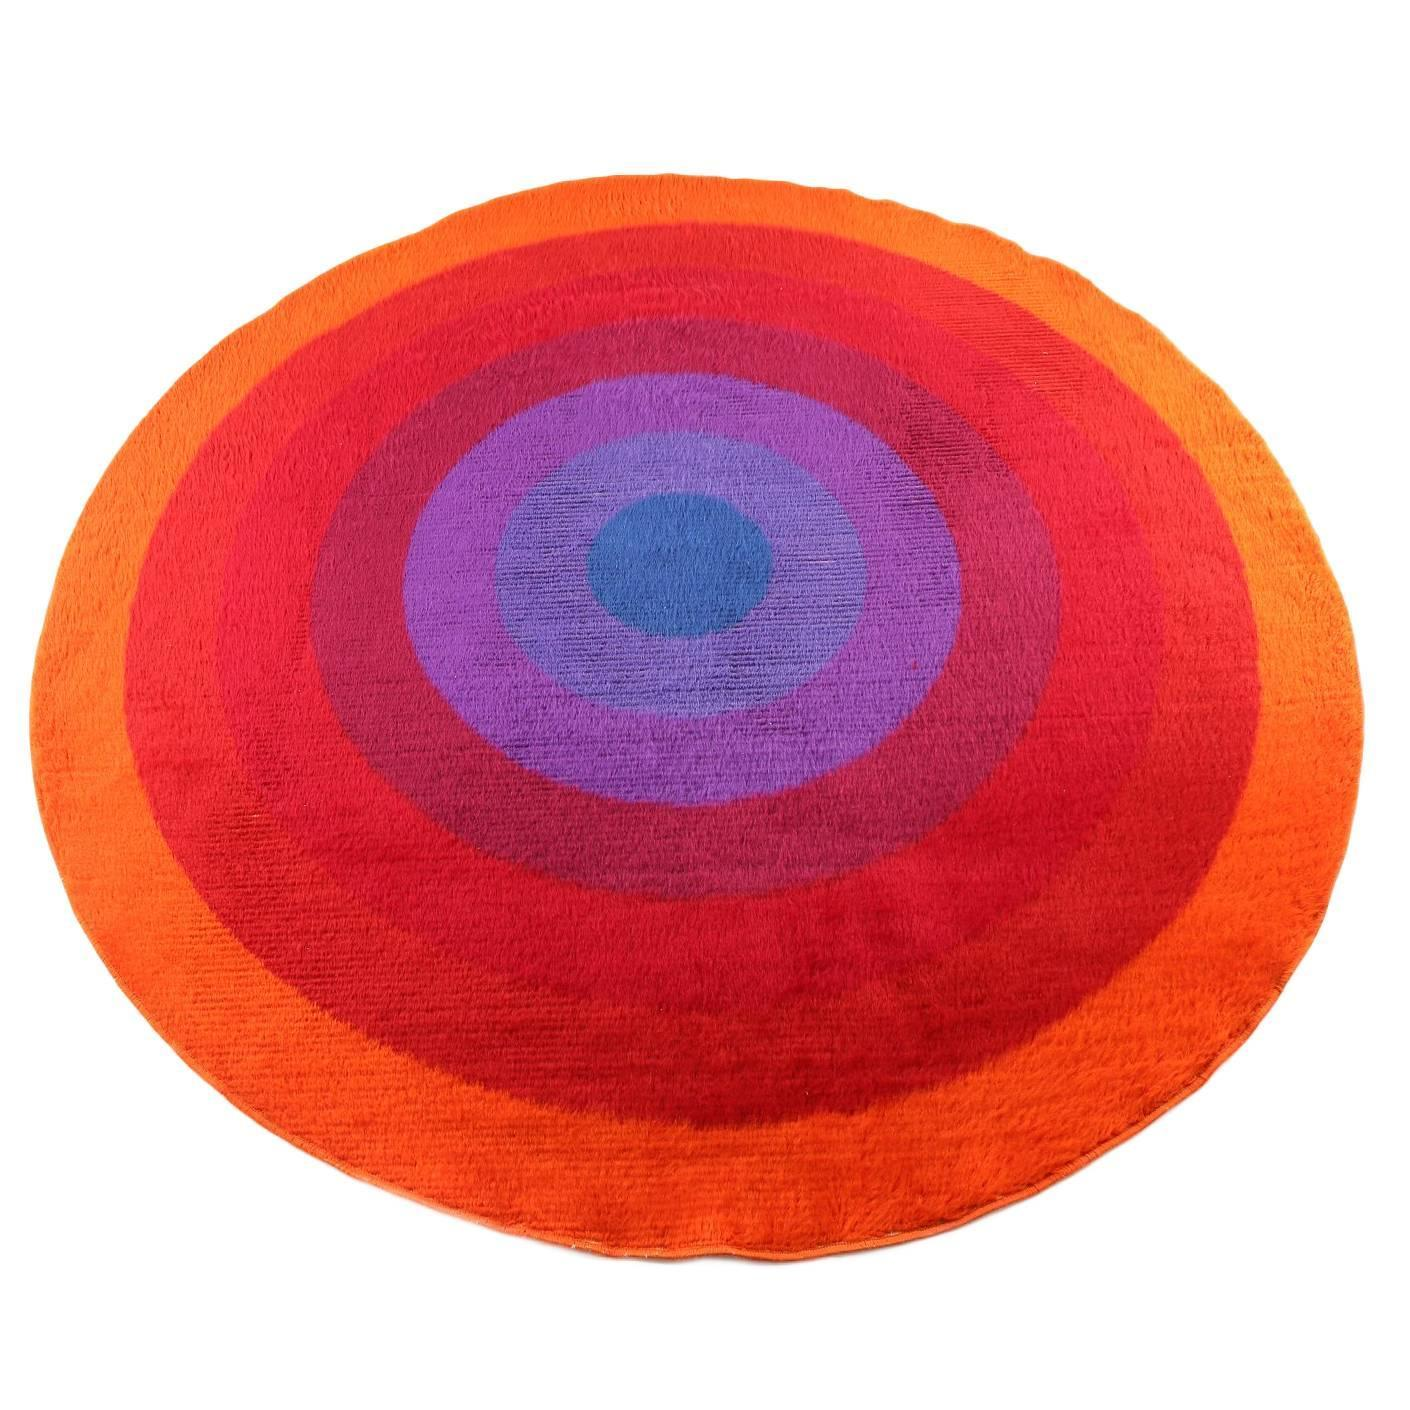 rare verner panton mira romantica largescale rug for sale at stdibs -